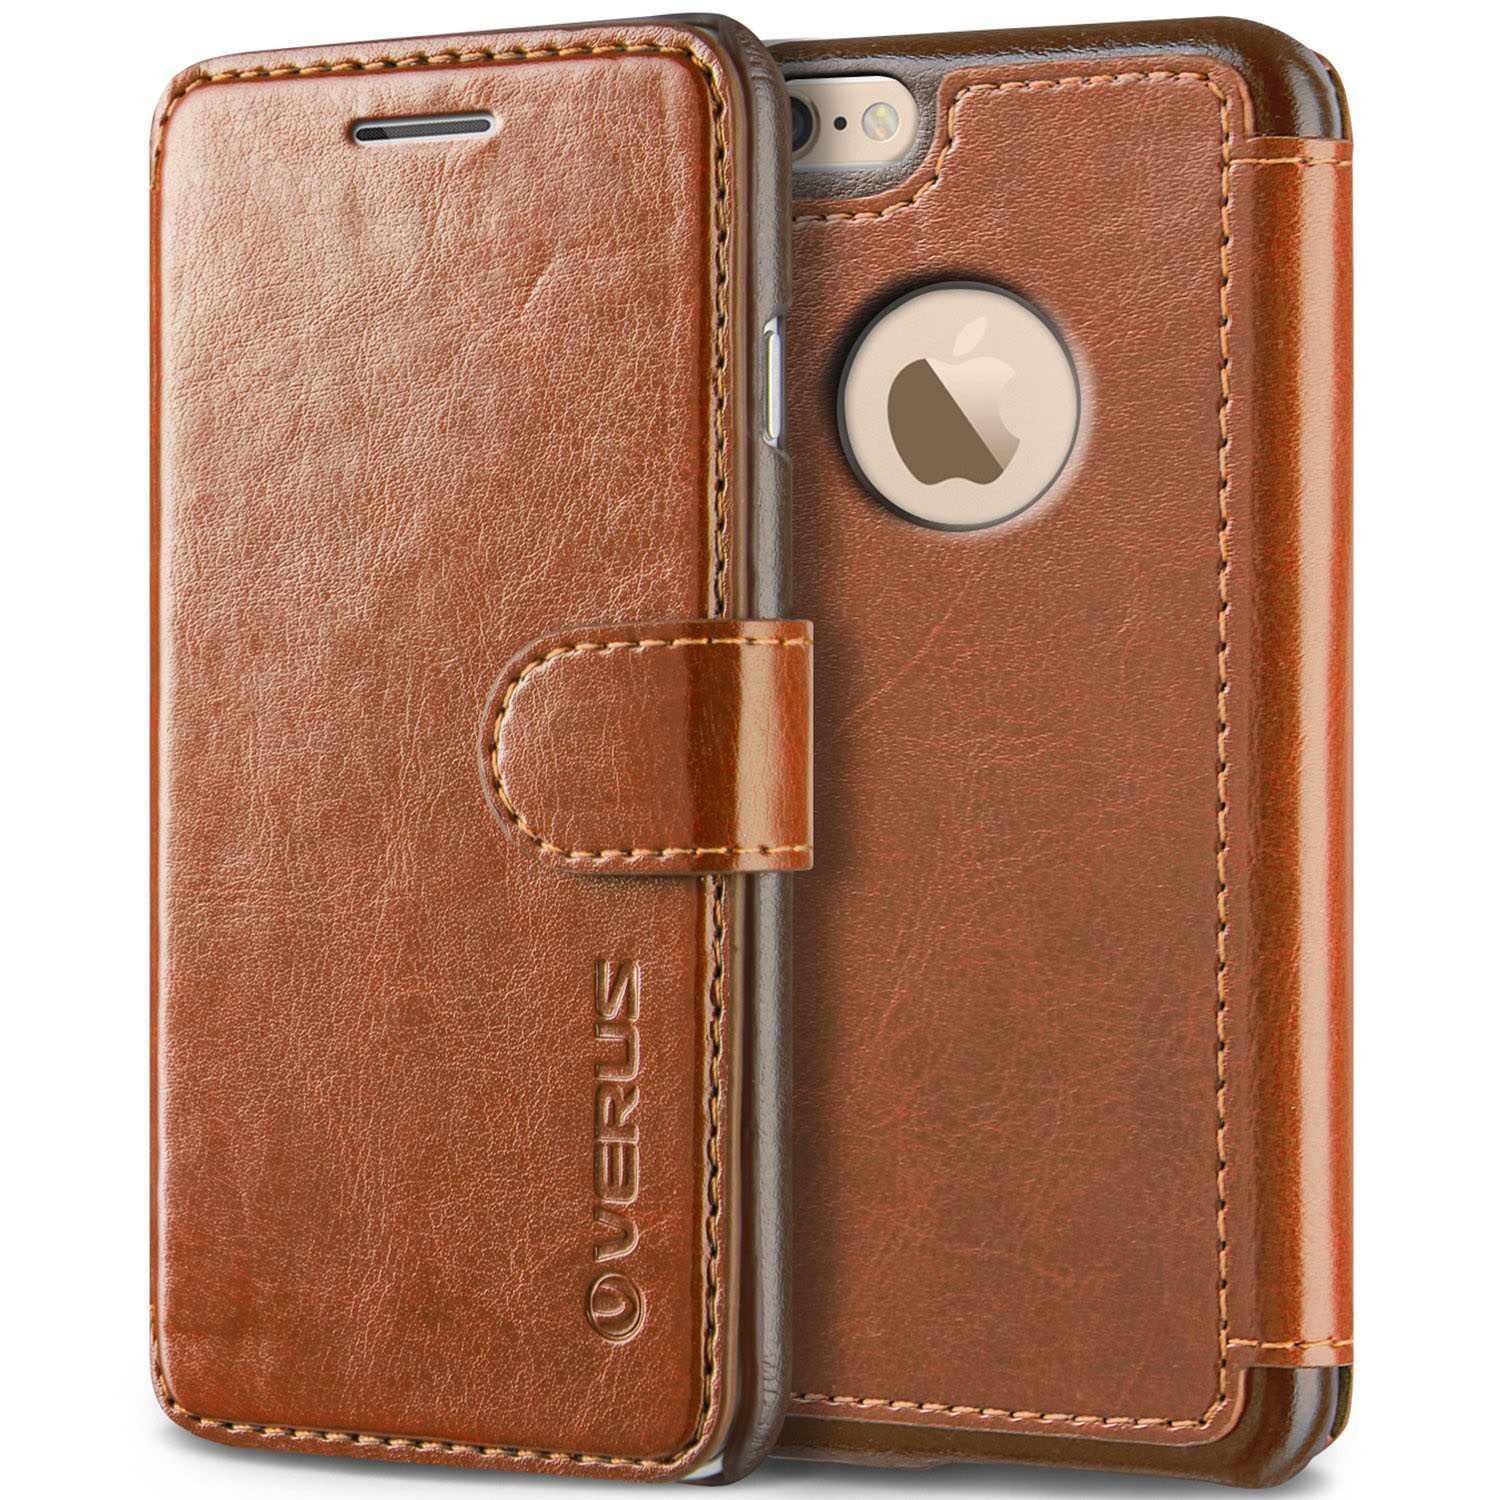 Brown Leather iPhone 6 Case